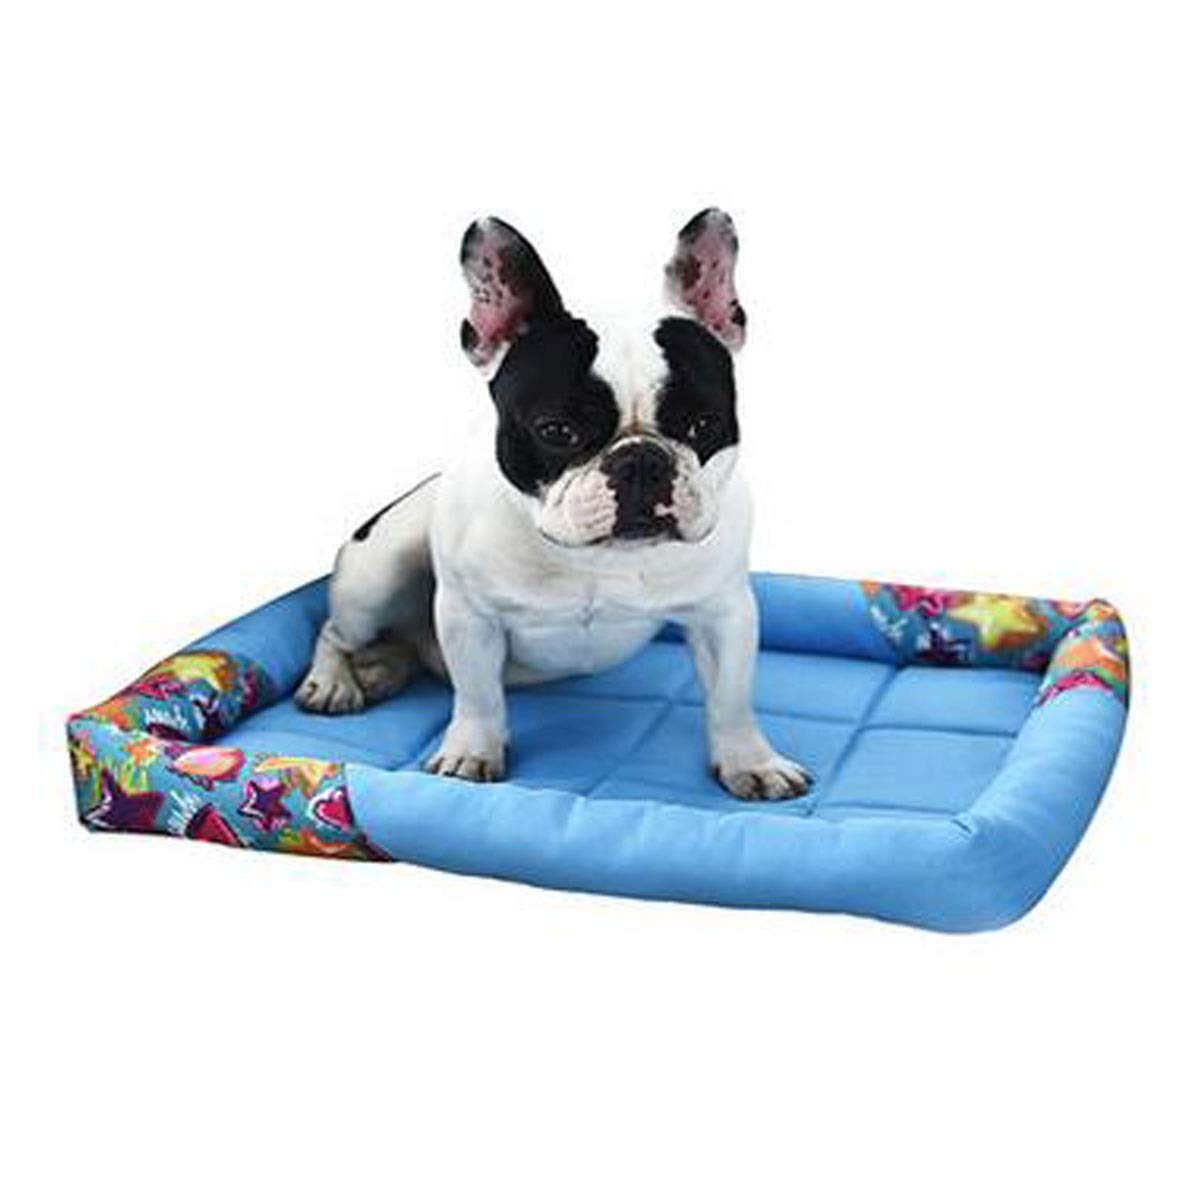 bluee M bluee M Dog Bed, Dog Sleeping Mat, Spring and Summer Small and Medium Dog Cat Orthopedic Soft Mattress, Dog House Supplies, Pink, bluee L (color   bluee, Size   M)